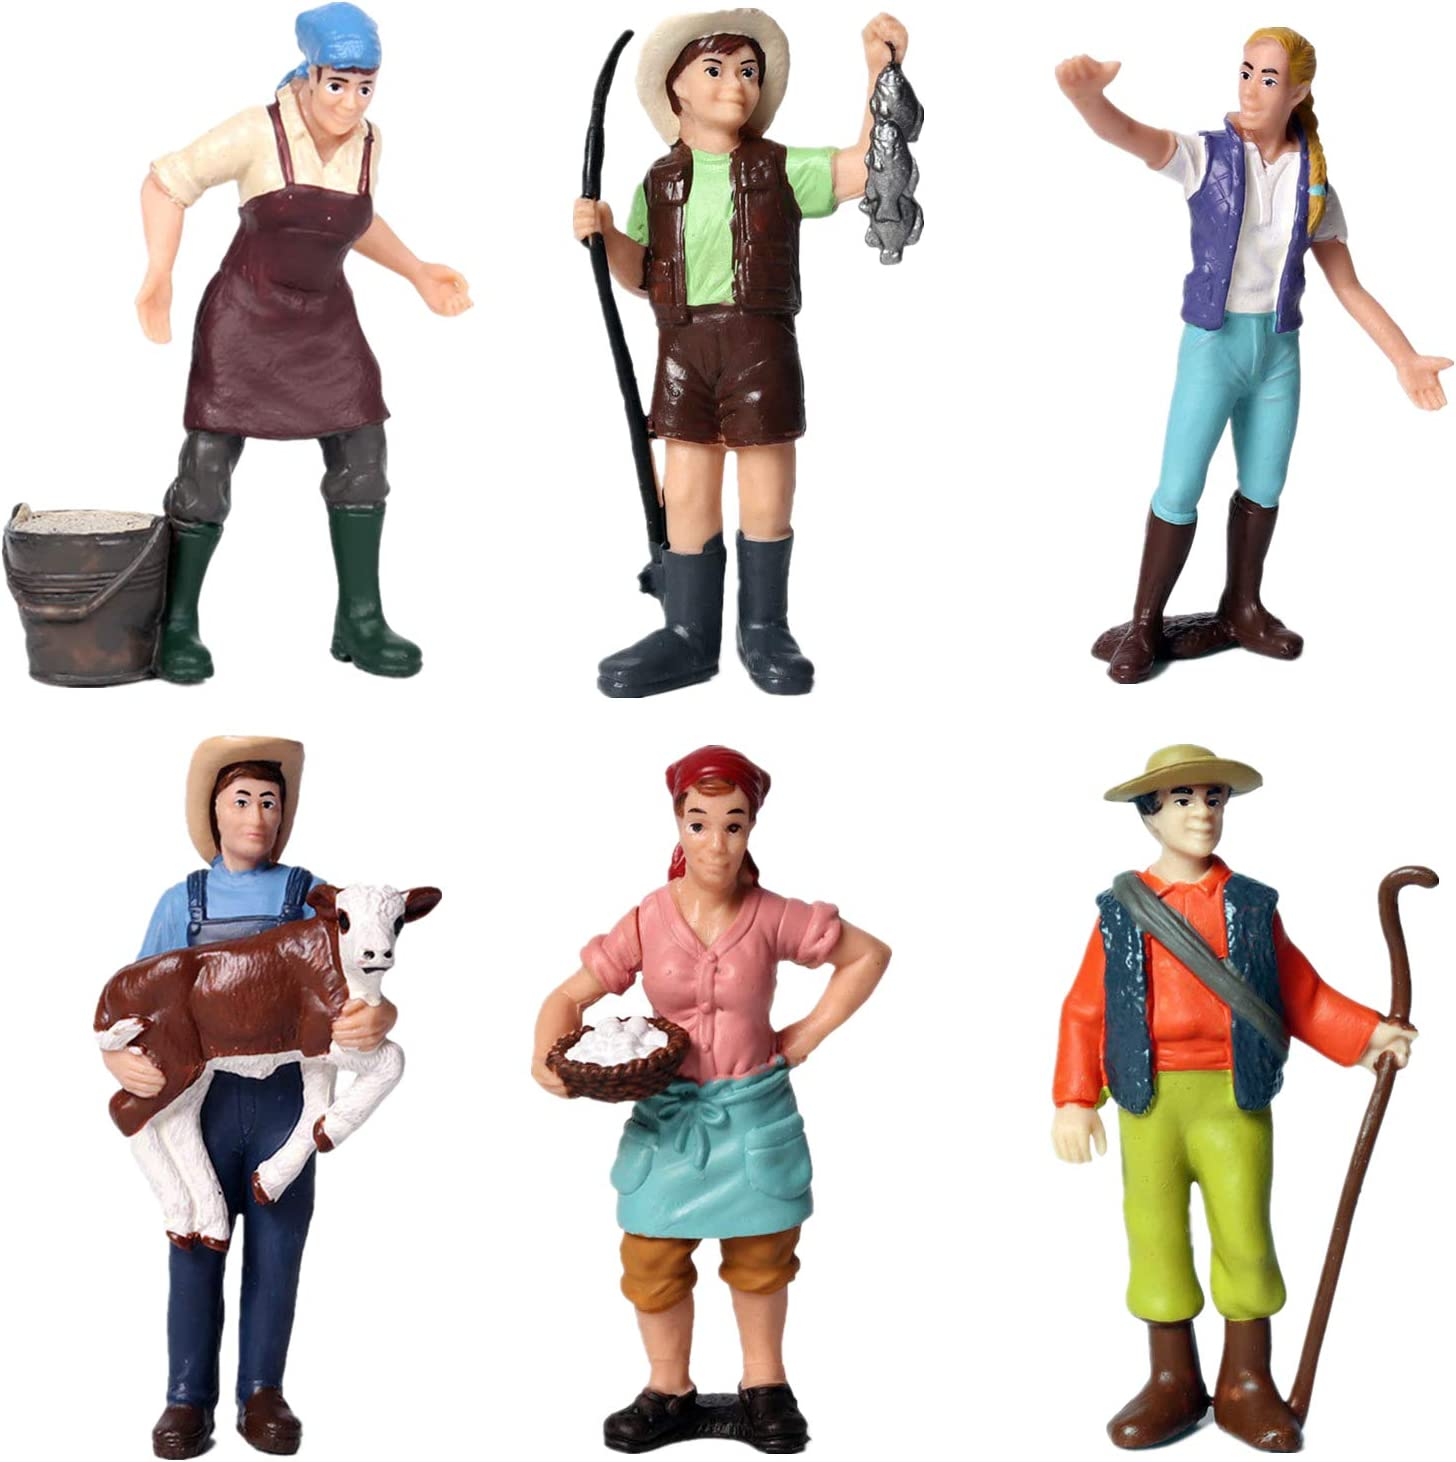 Painted Figures Farm Worker Model Simulation Animals Figures Crafts Ornament